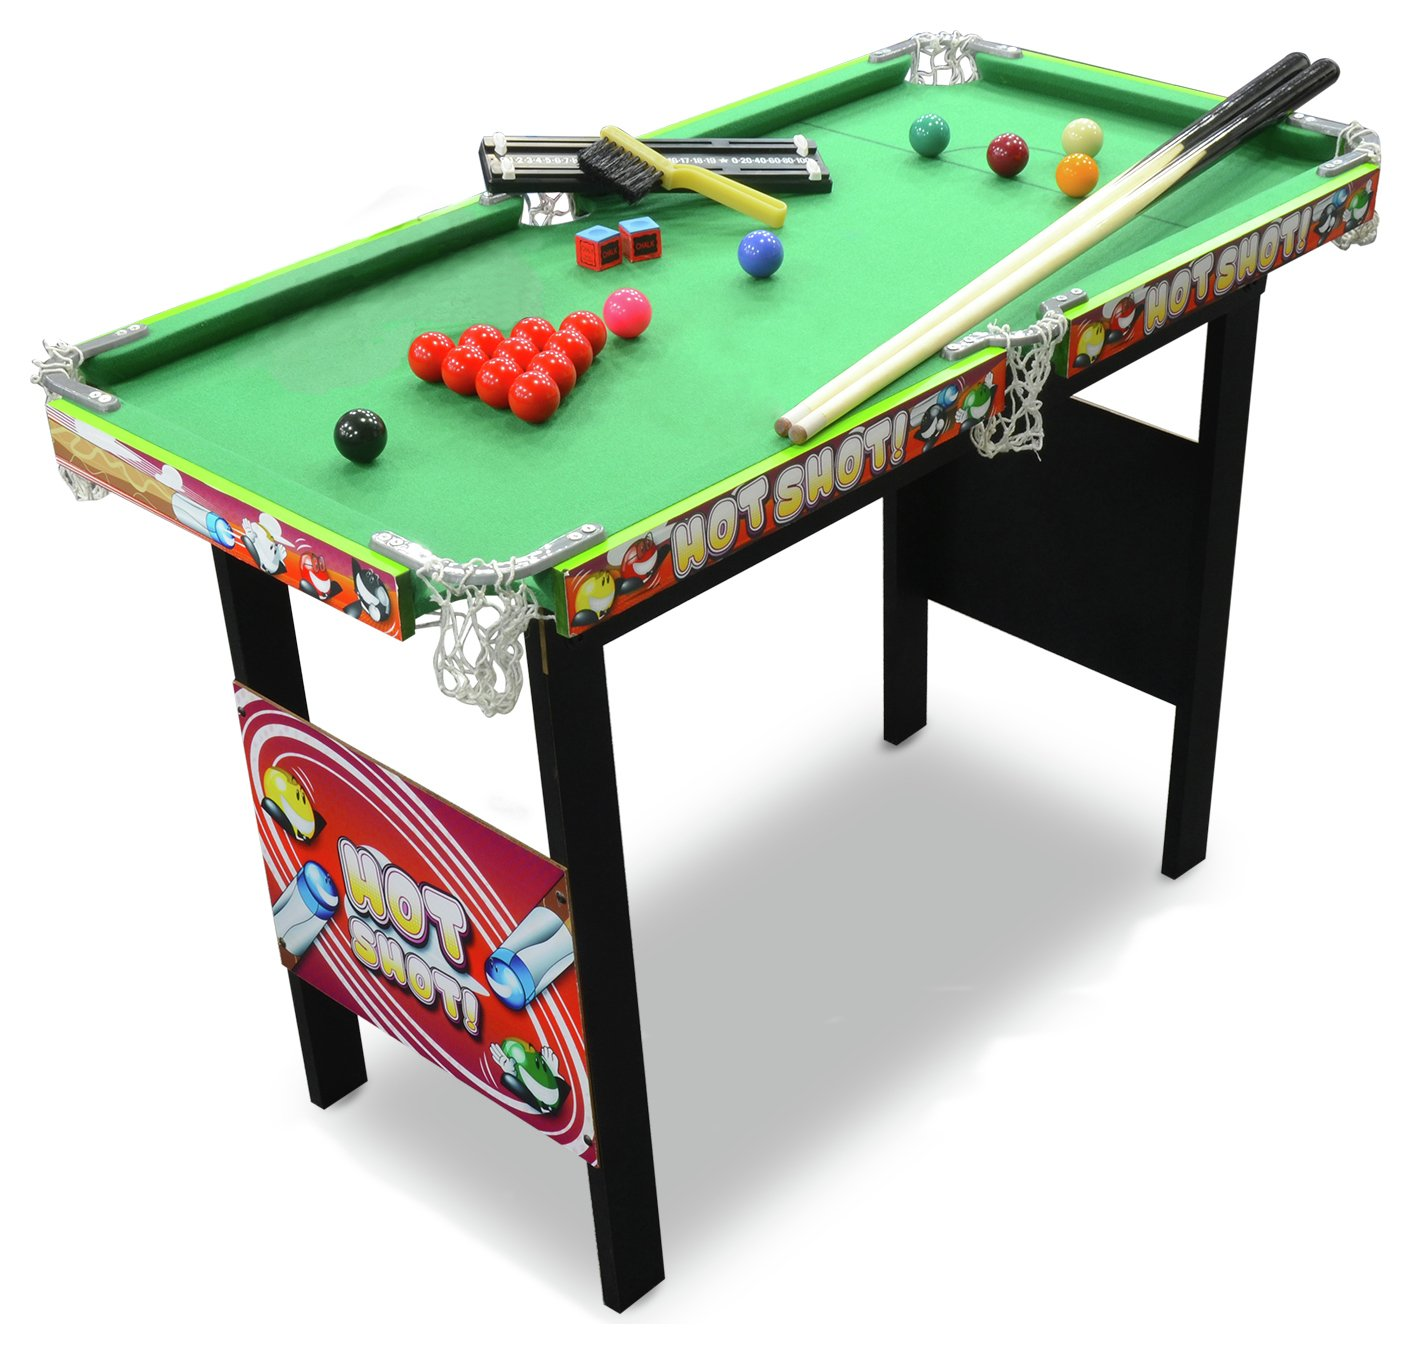 Buy Chad Valley 3ft Snooker/Pool Game Table At Argos.co.uk   Your Online  Shop For Snooker Tables, Snooker, Sports, Sports And Leisure.